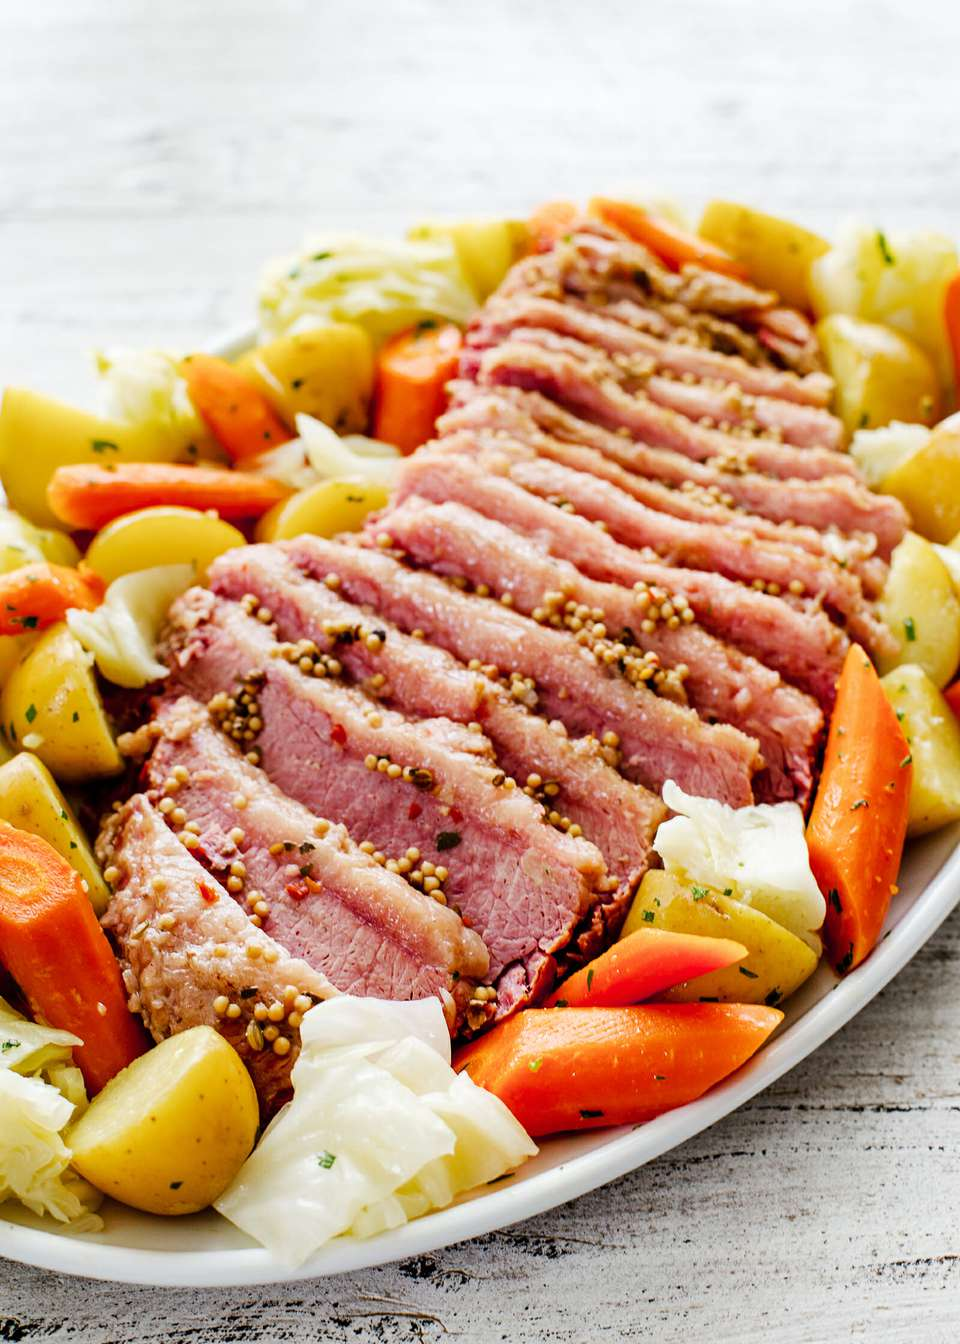 Corned Beef and Cabbage Recipe - corned beef, cabbage, potato, carrots on platter